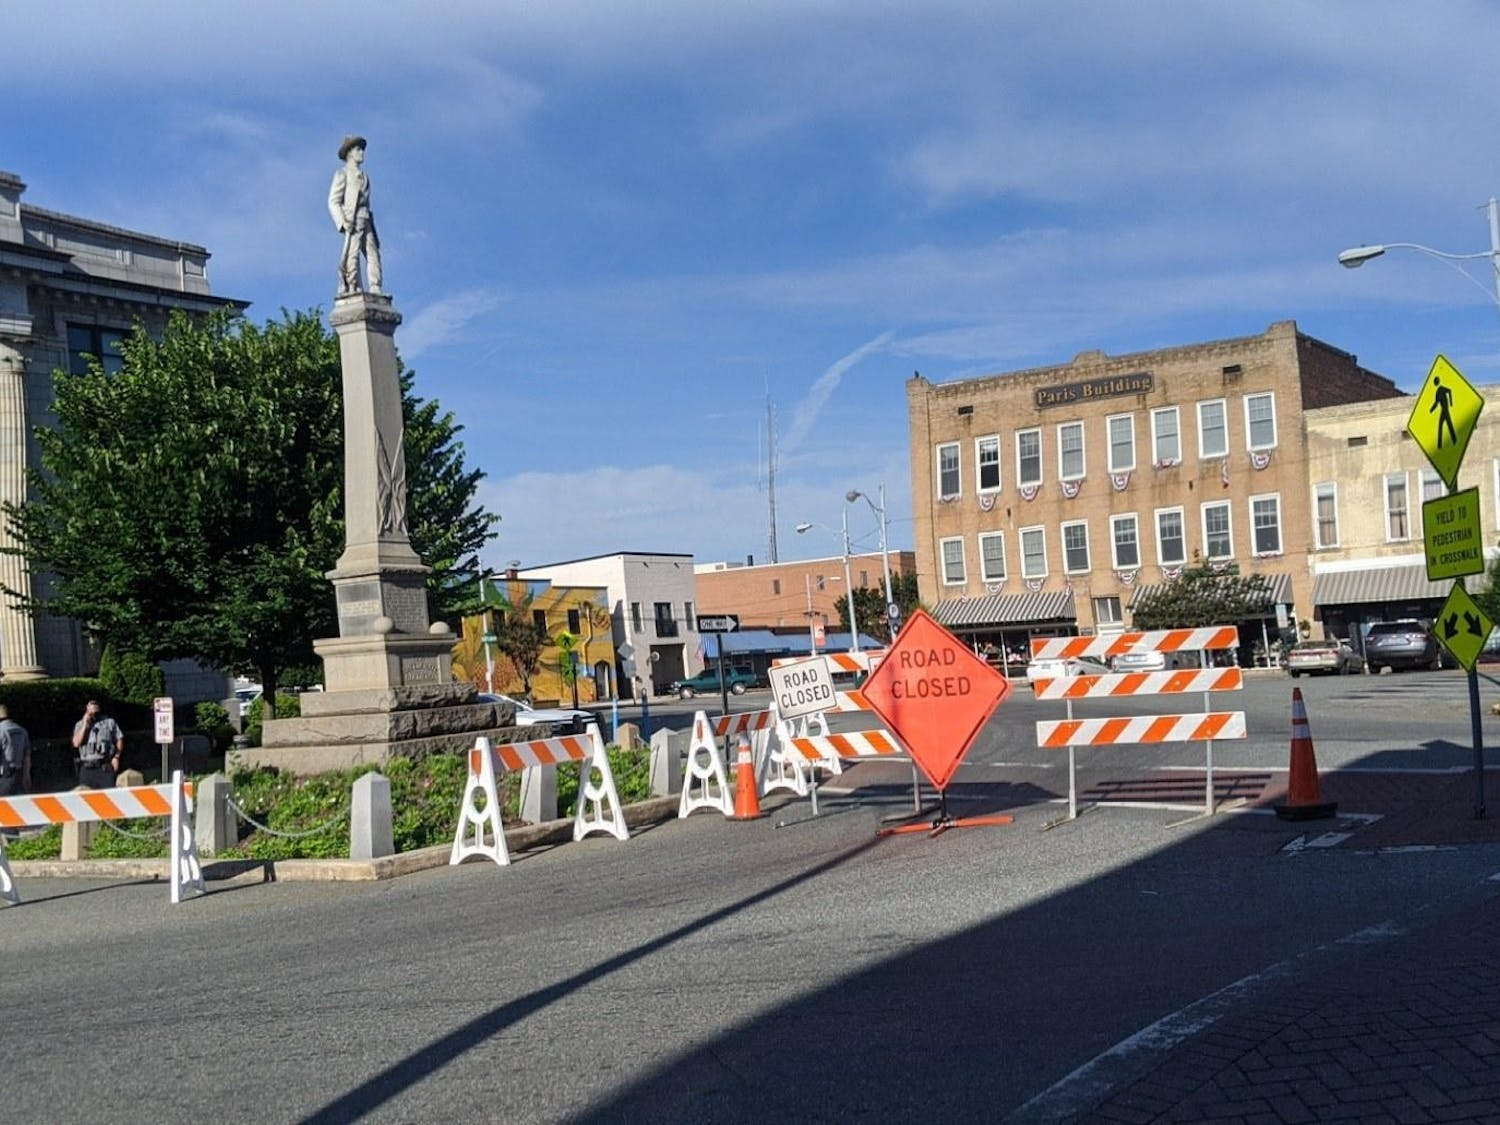 The Alamance County Confederate Monument in Graham, NC is surrounded by road barricades and signs. Photo courtesy of Colin Dodd.